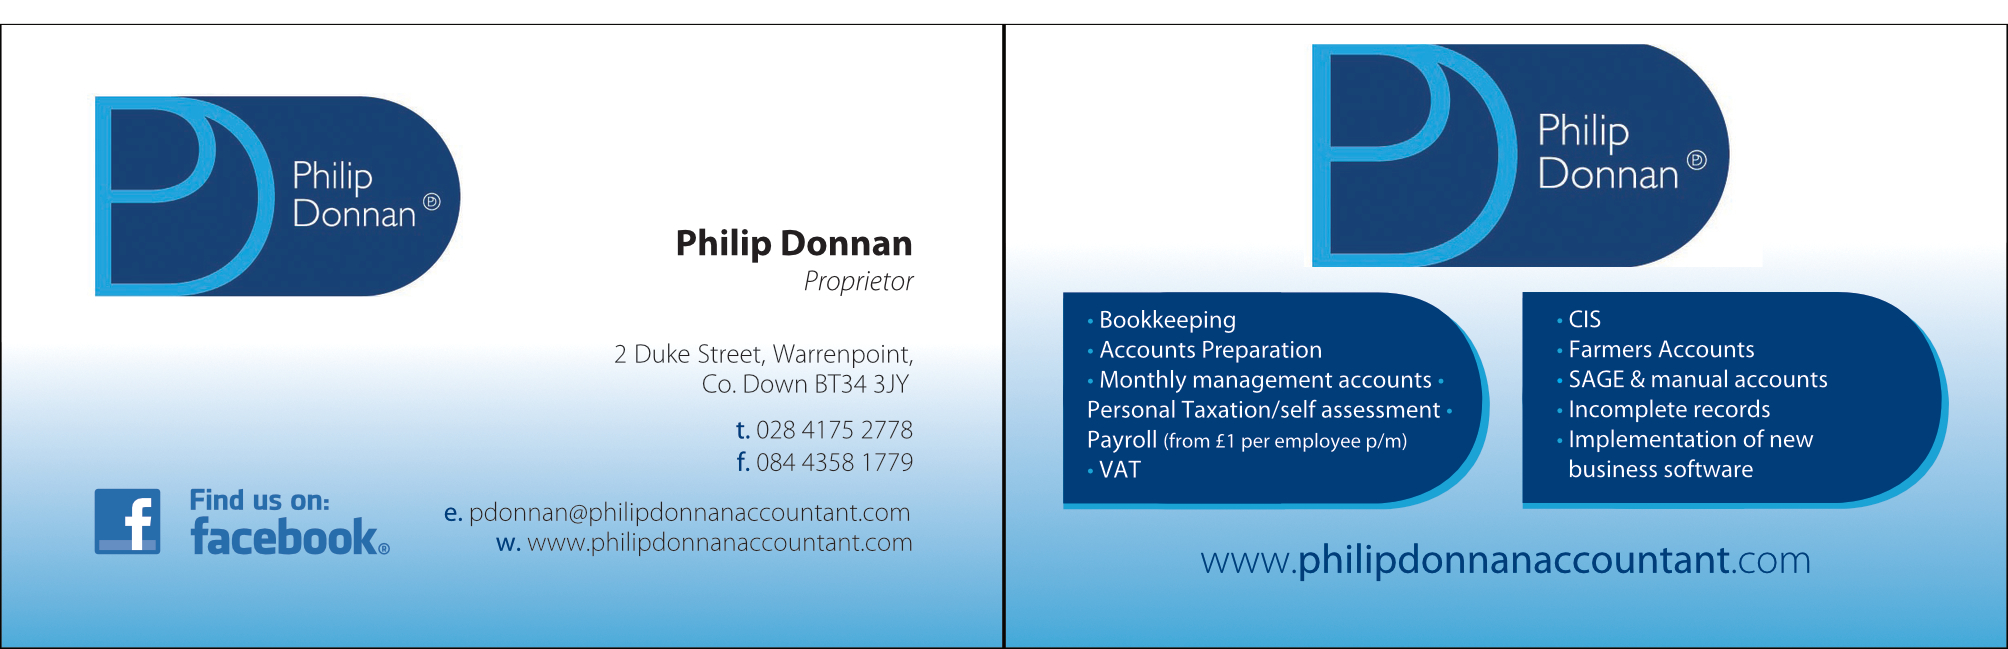 Philip Donnan Accountant